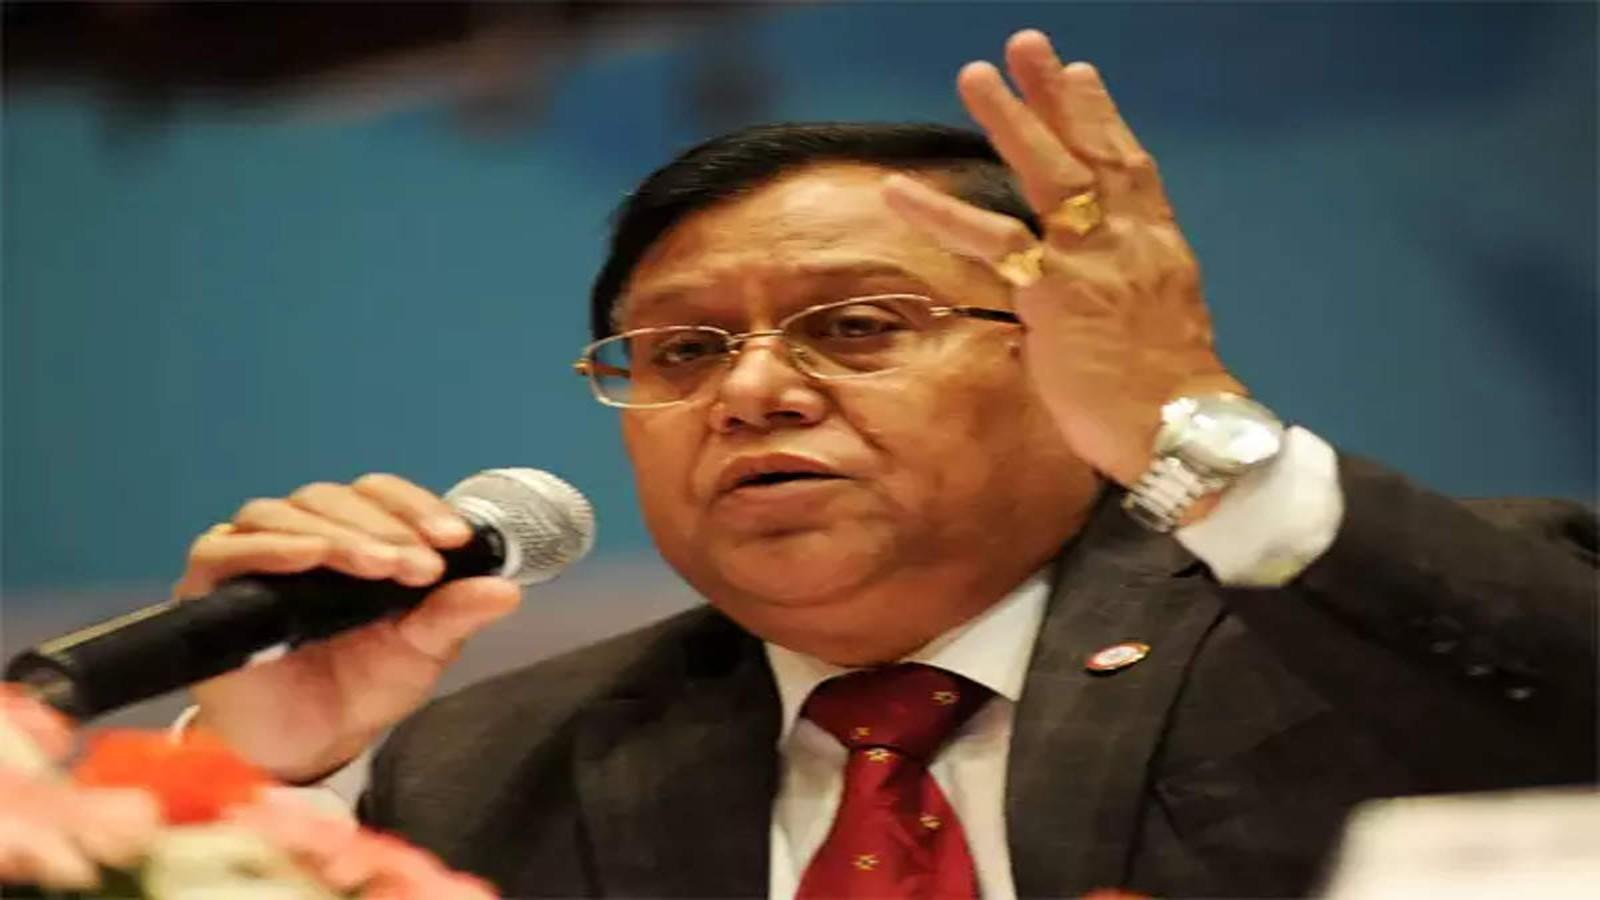 internet-in-jk-only-used-to-watch-dirty-films-niti-aayog-member-v-k-saraswat